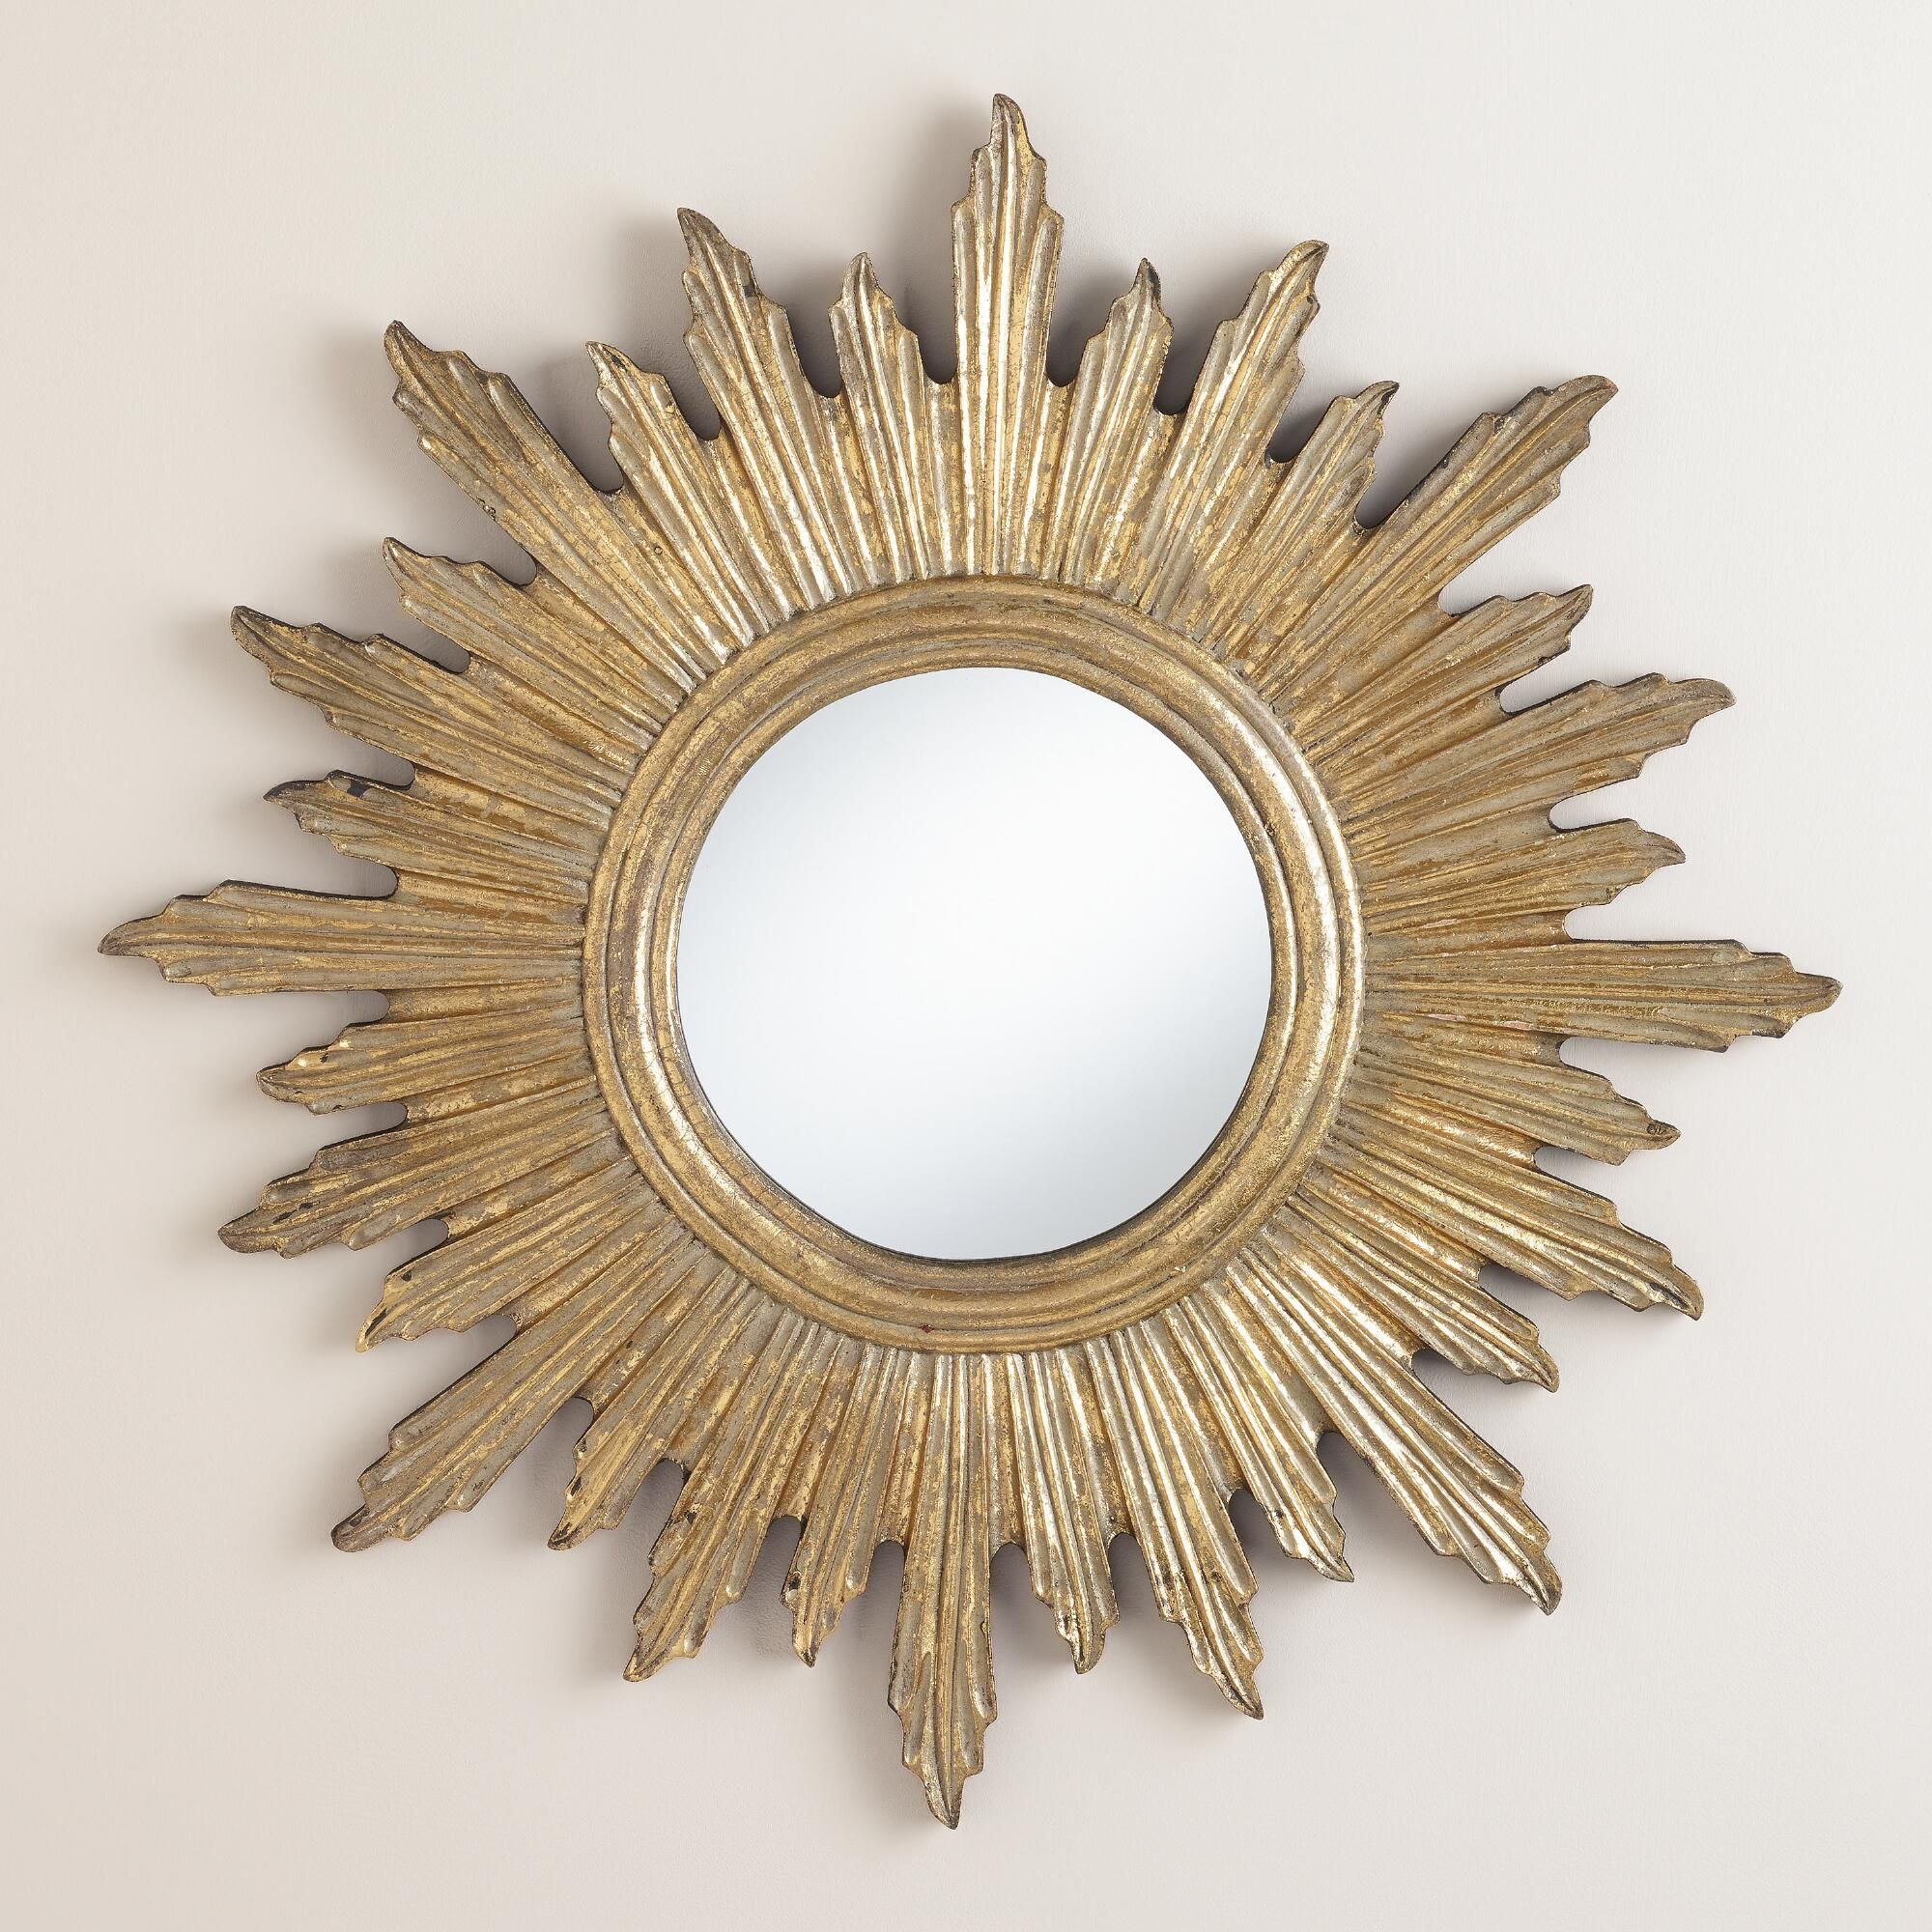 Brighten A Room With Our Radiant Sunburst Mirror Handcrafted By